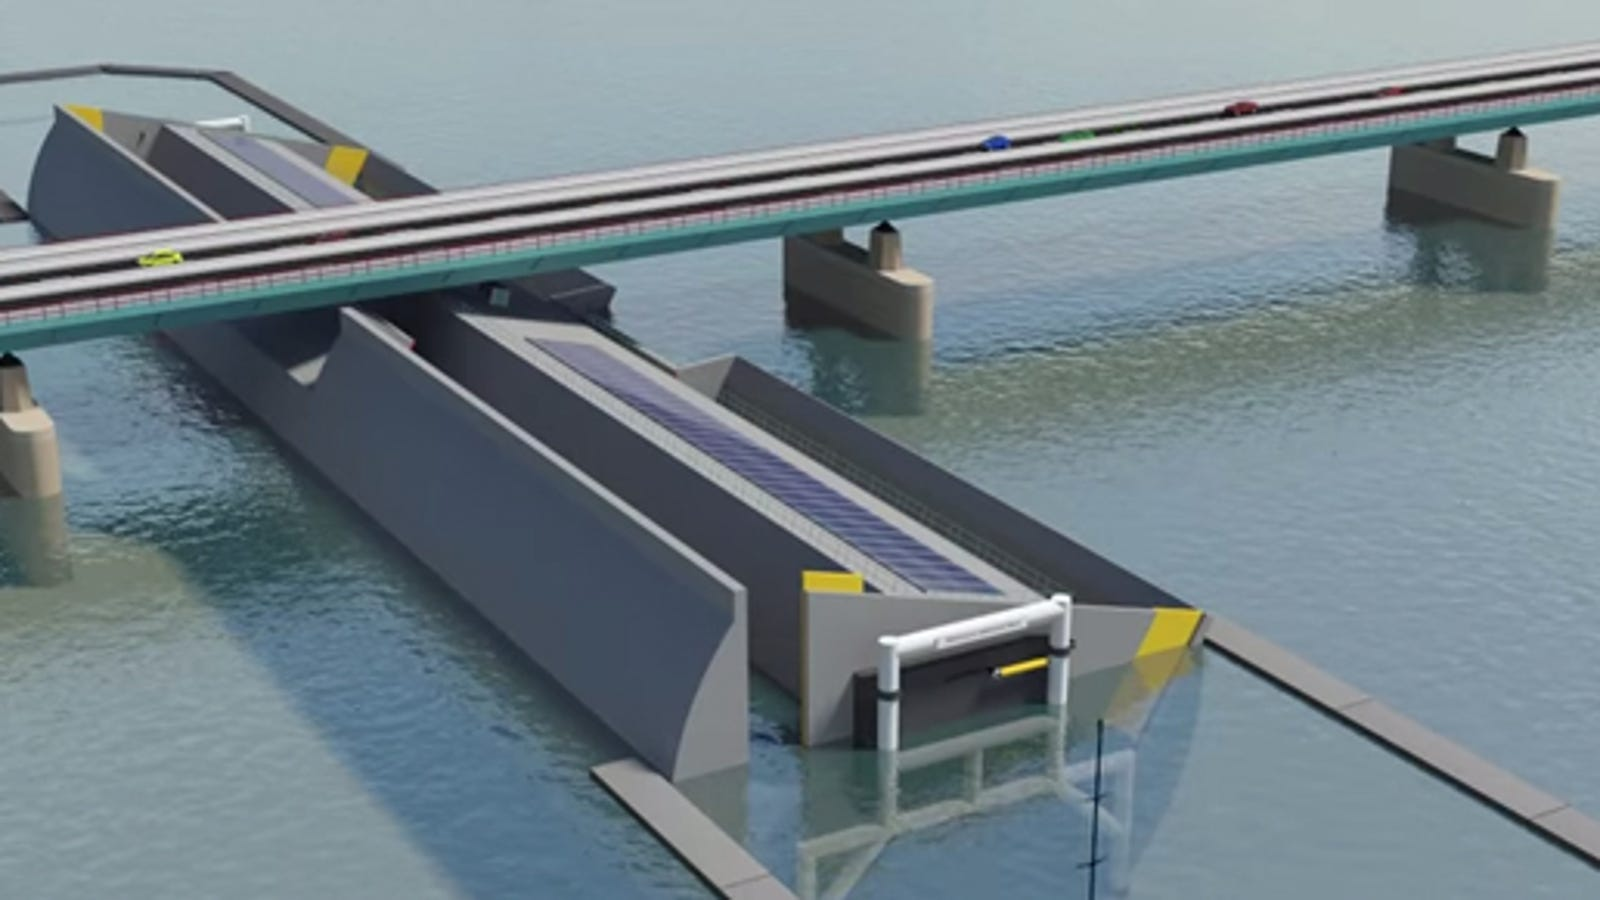 Ingenious Design Lowers the Water Under a Bridge to Let Tall Ships Pass